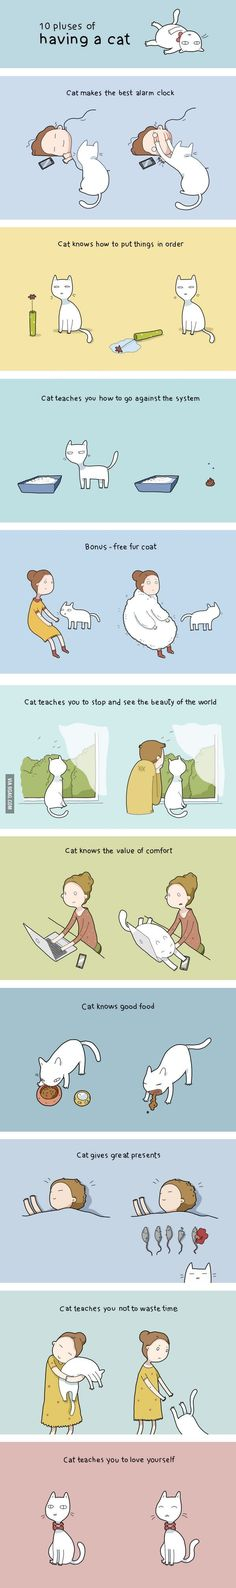 10 beneficios de tener un gato - Benefits of owning a cat :)